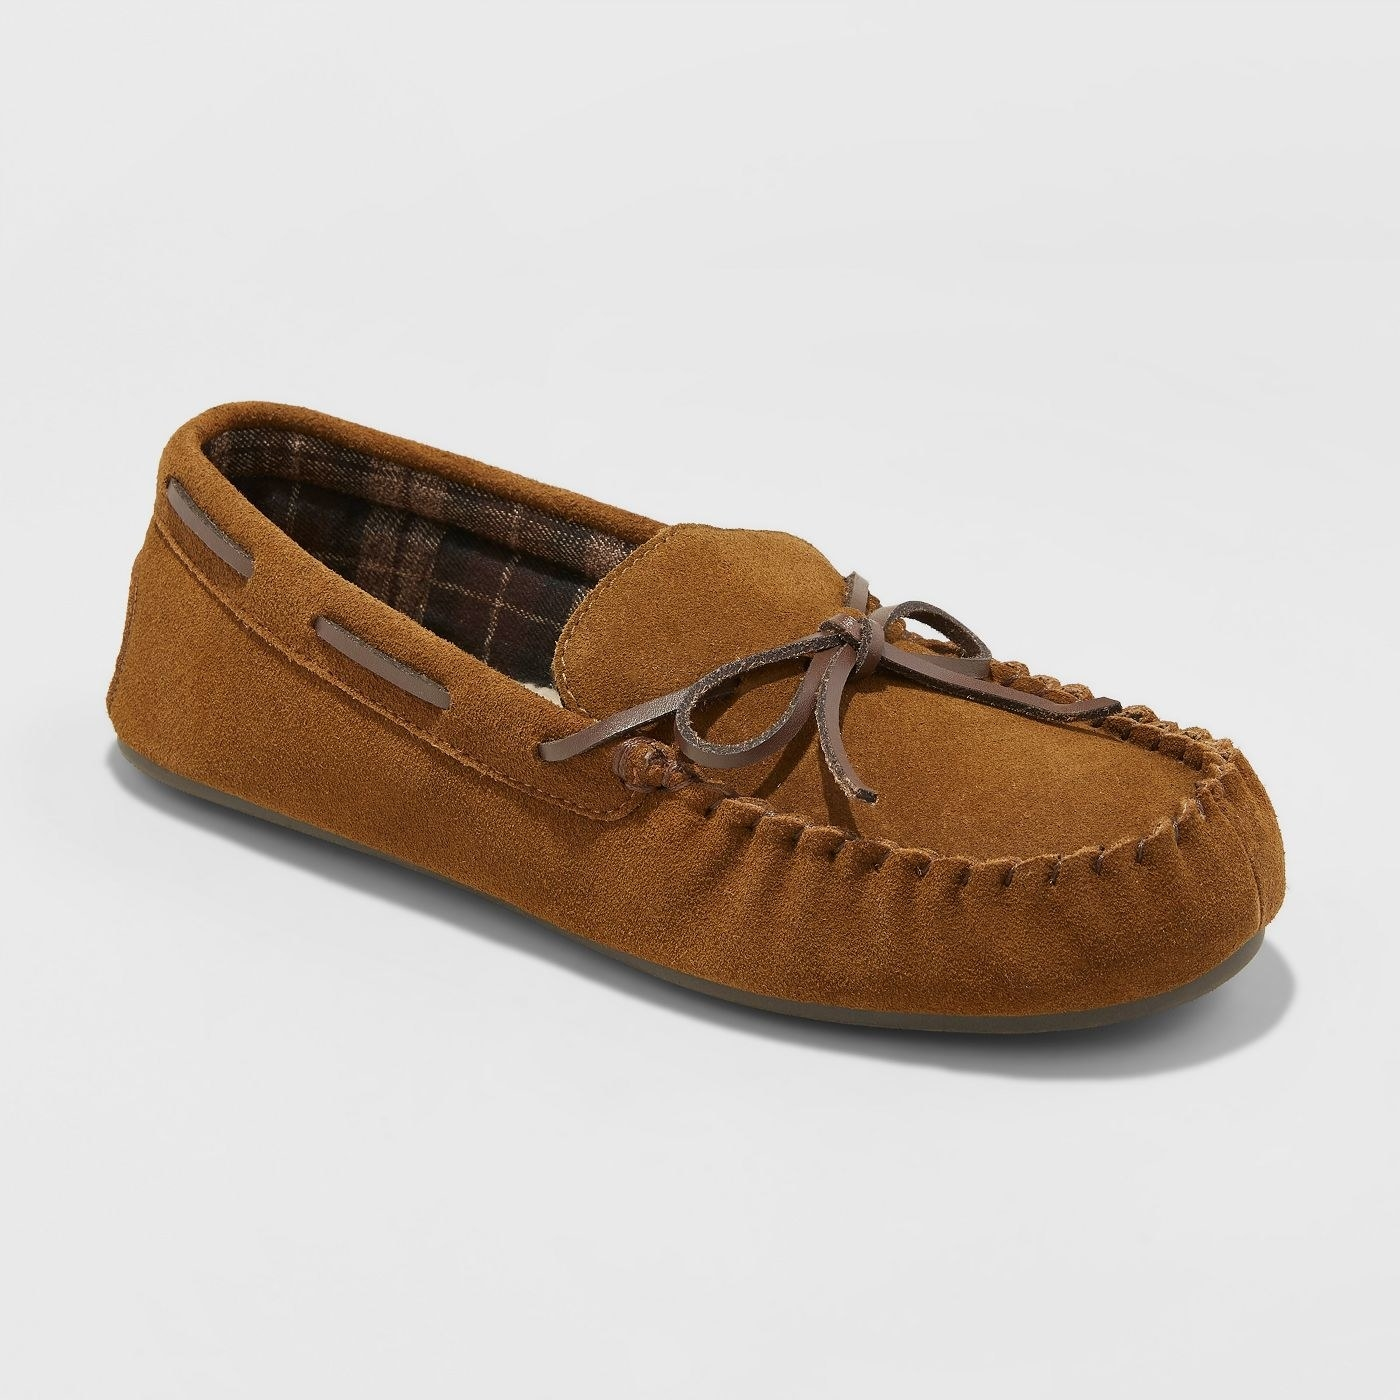 men's moccasin slippers with faux fur lining